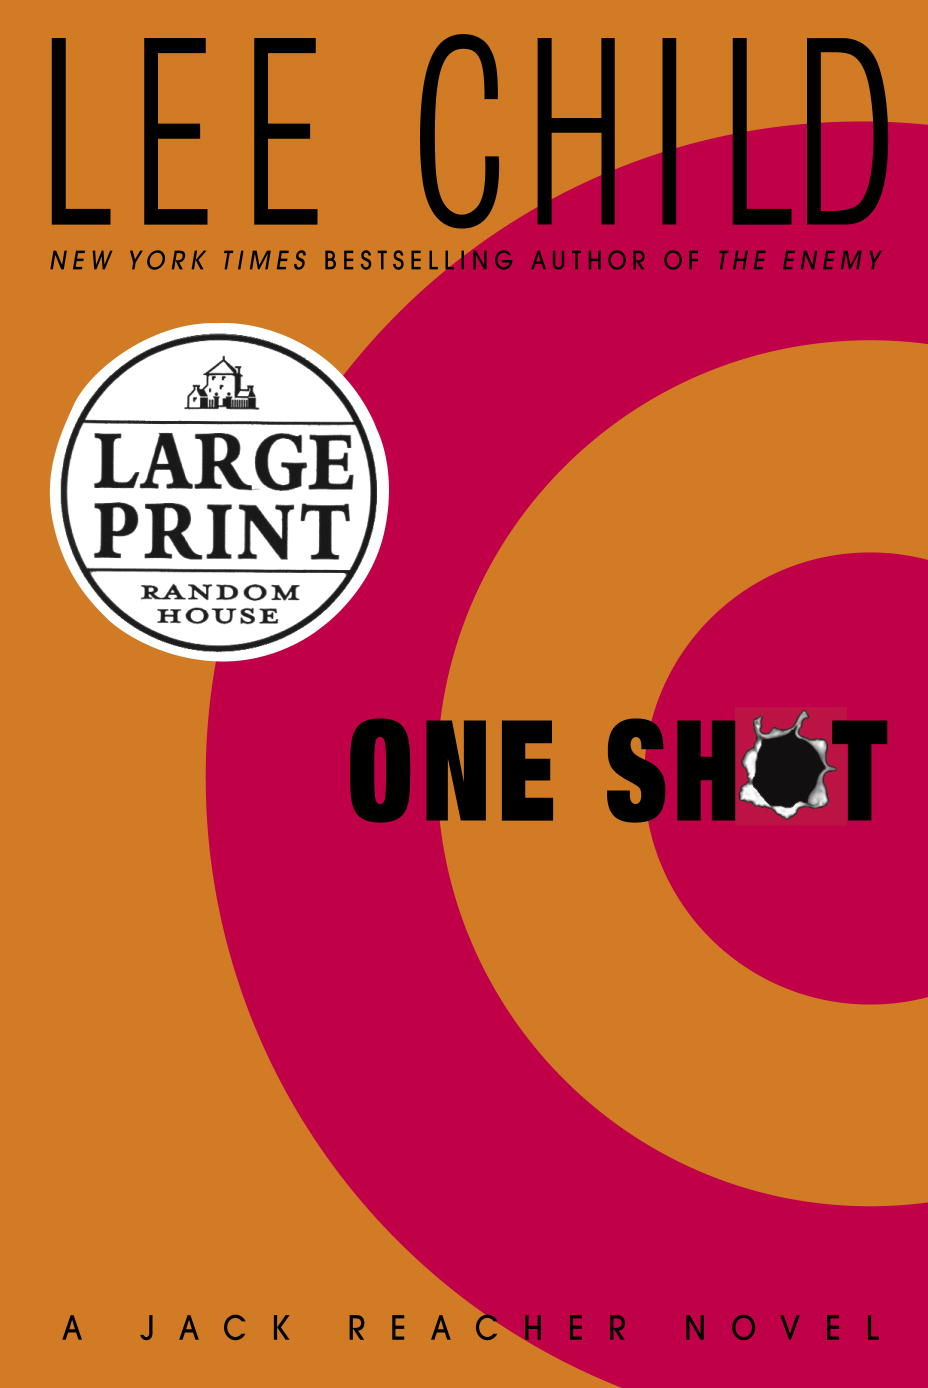 One Shot: (Jack Reacher 9) By Lee Child. 9780553815863